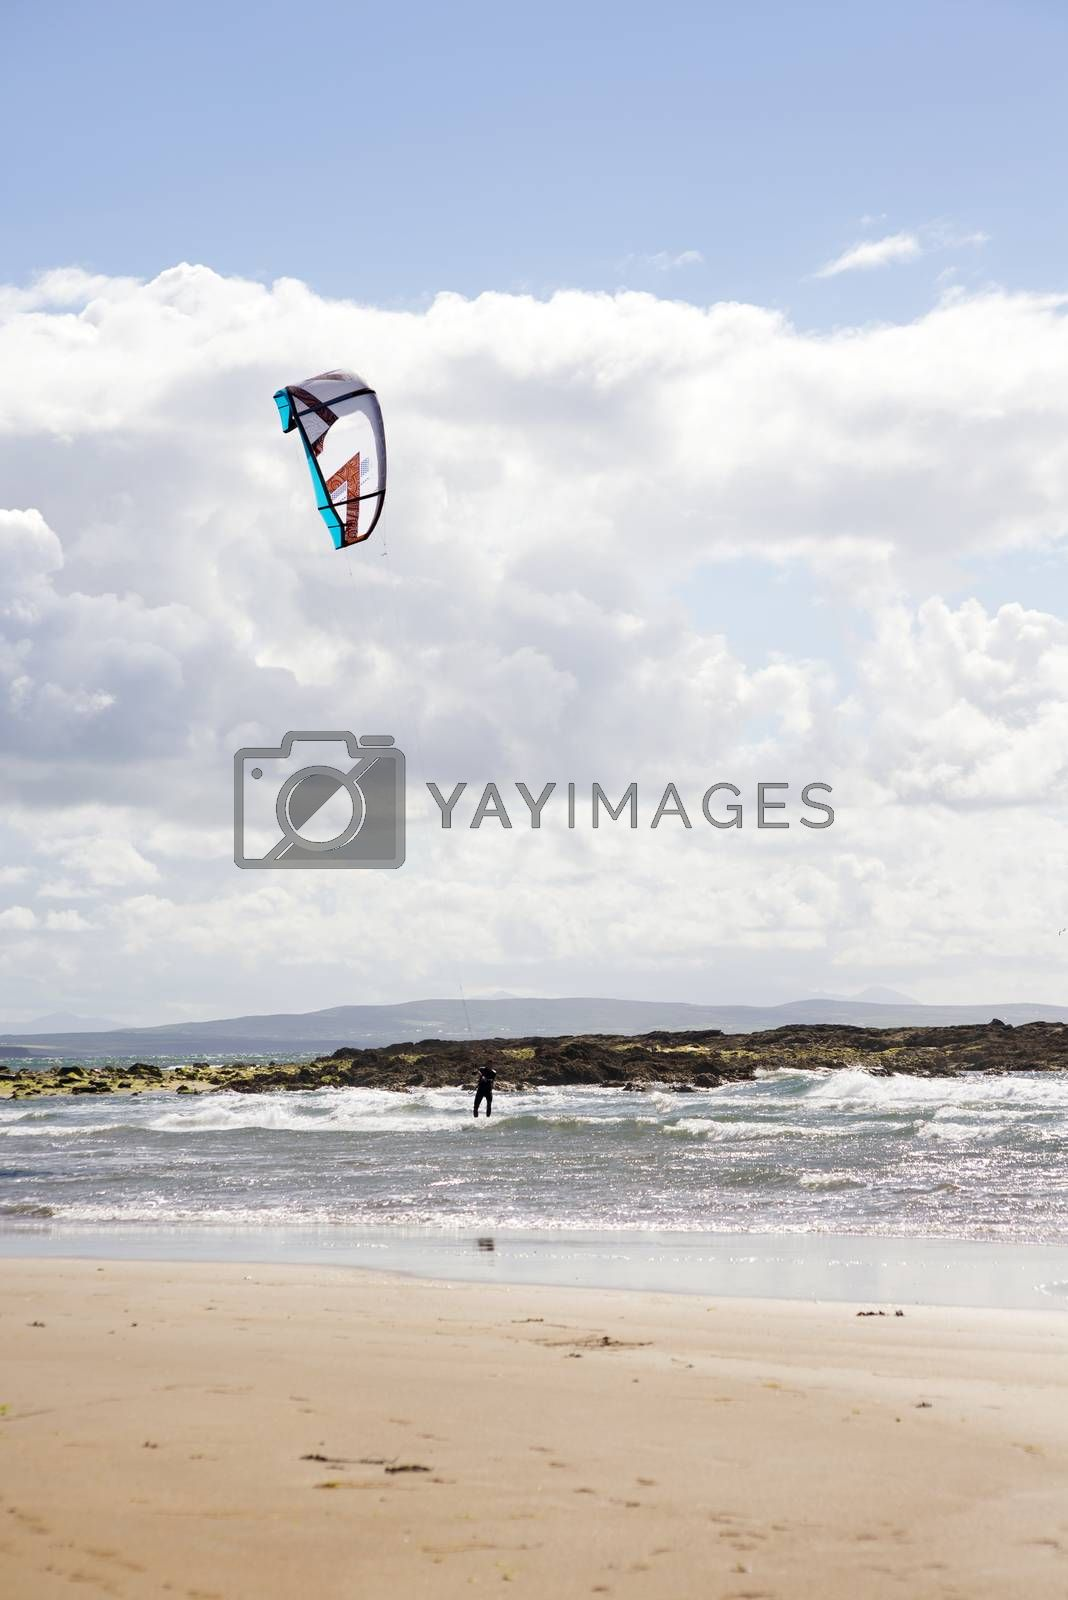 fast kite surfer on beautiful waves at beach in ballybunion county kerry ireland on the wild atlantic way